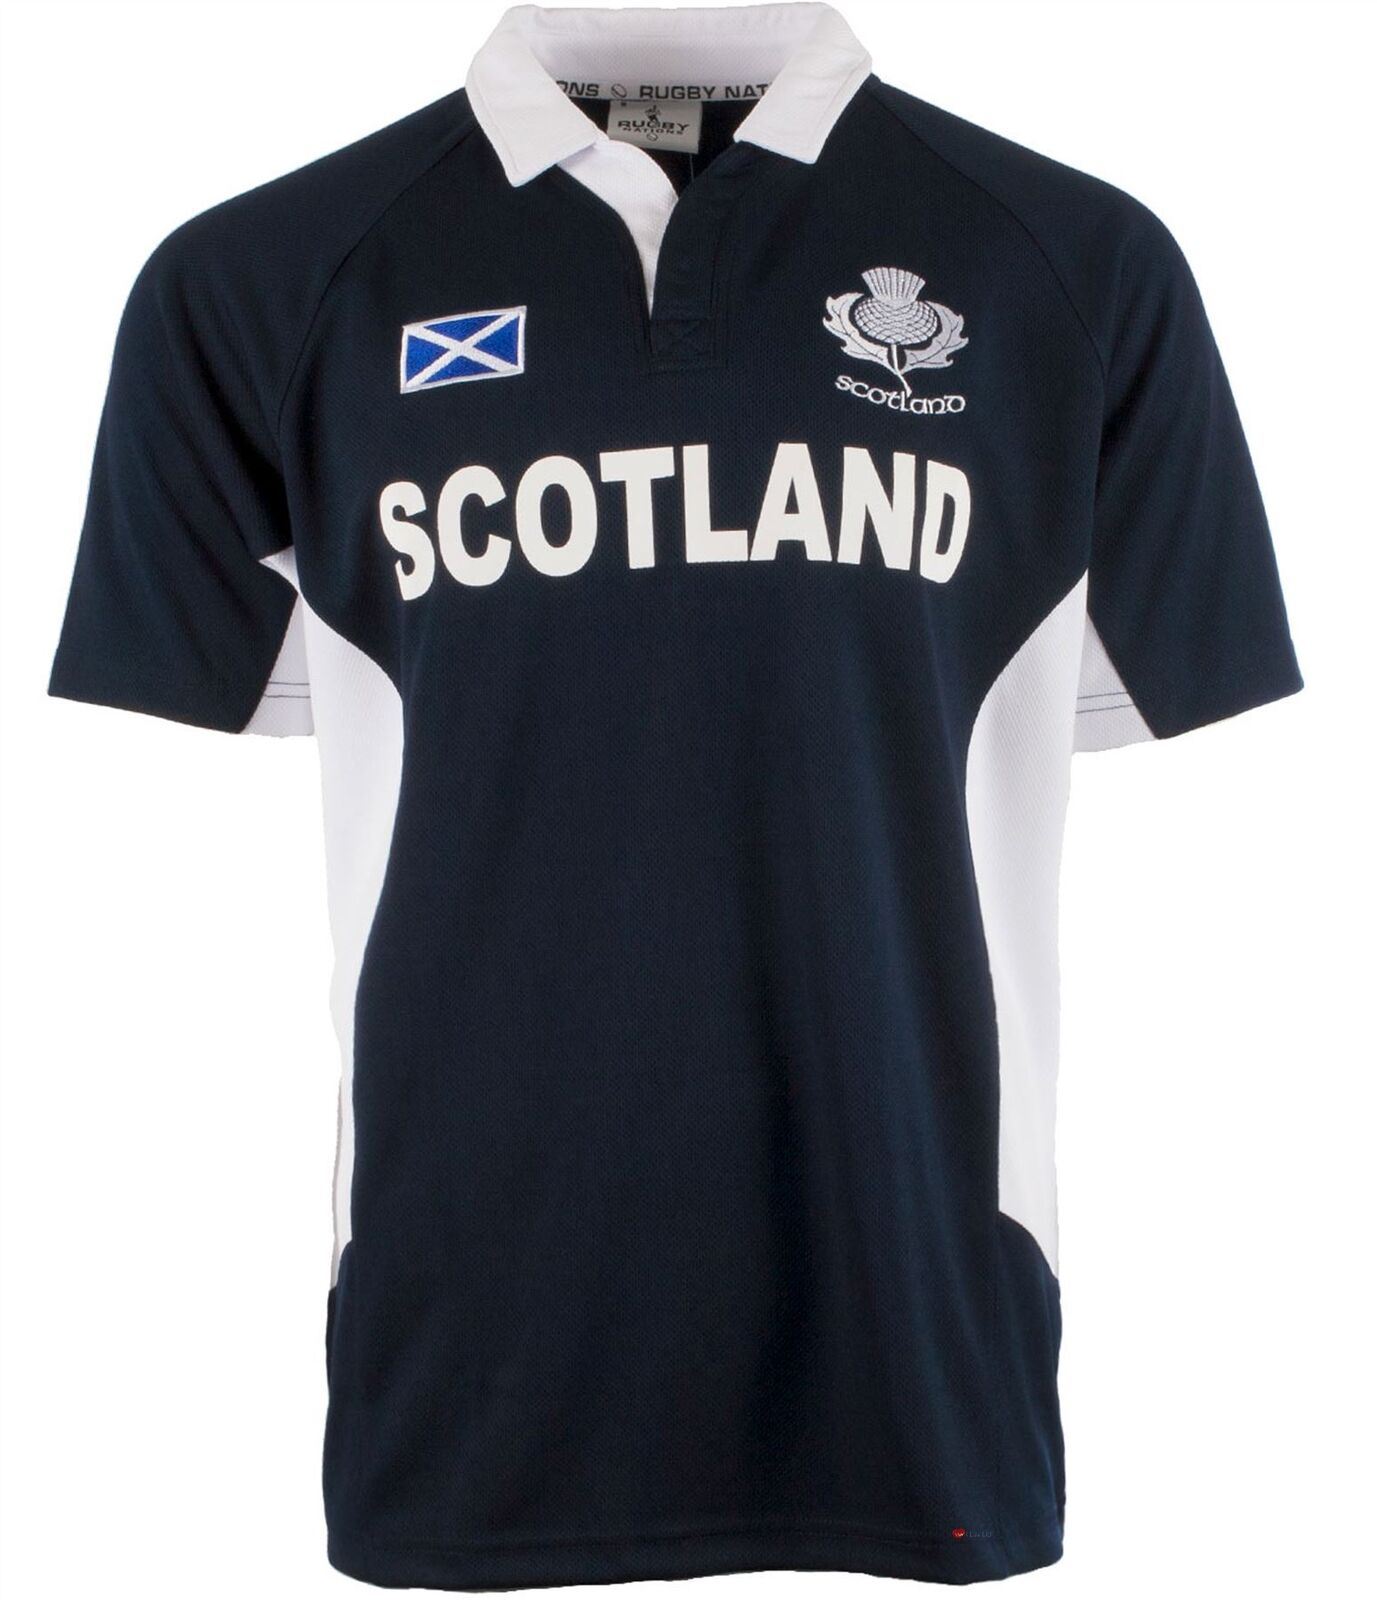 Gents Rugby Nations Rugby Shirt With Thistle Design In Navy Size 3X-Large